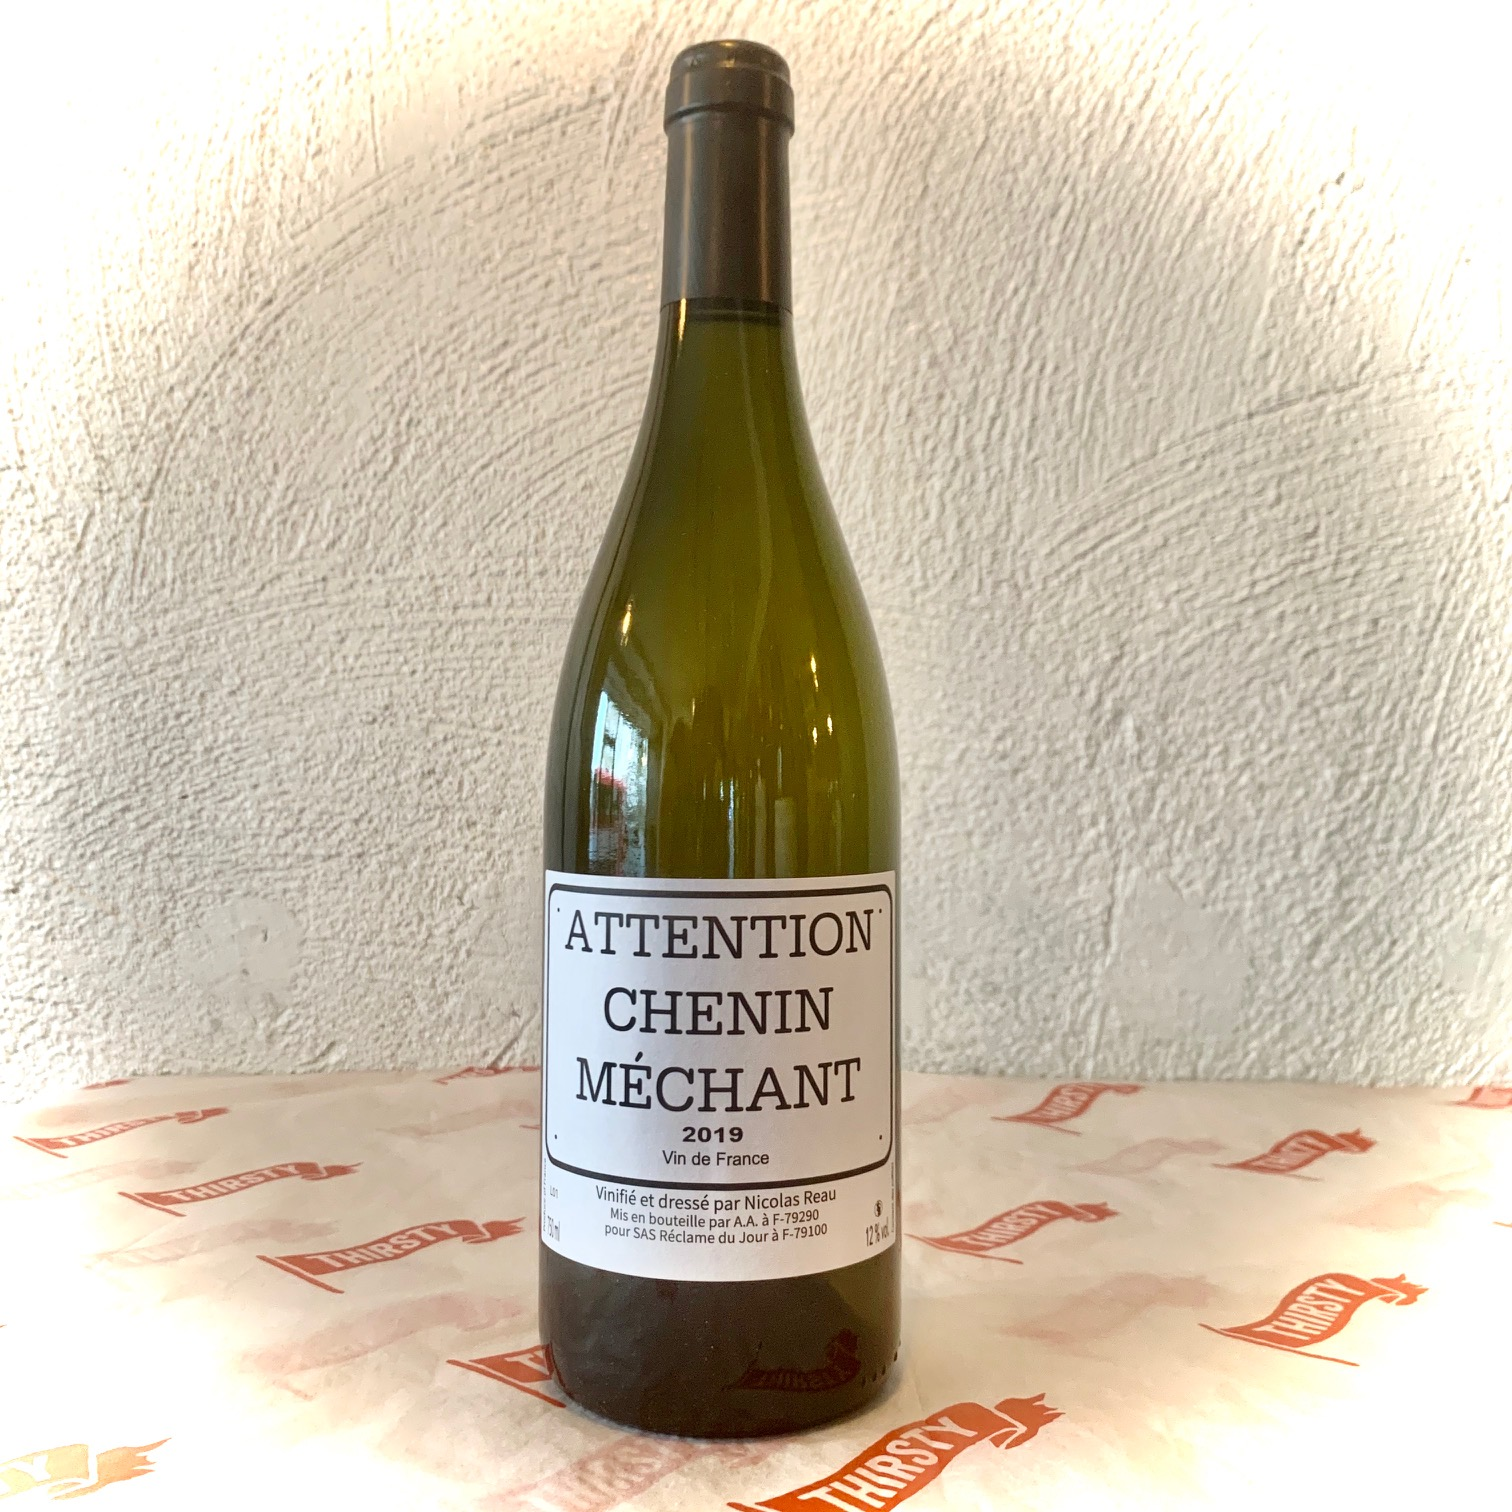 Nicolas Reau Attention Chenin Mechant